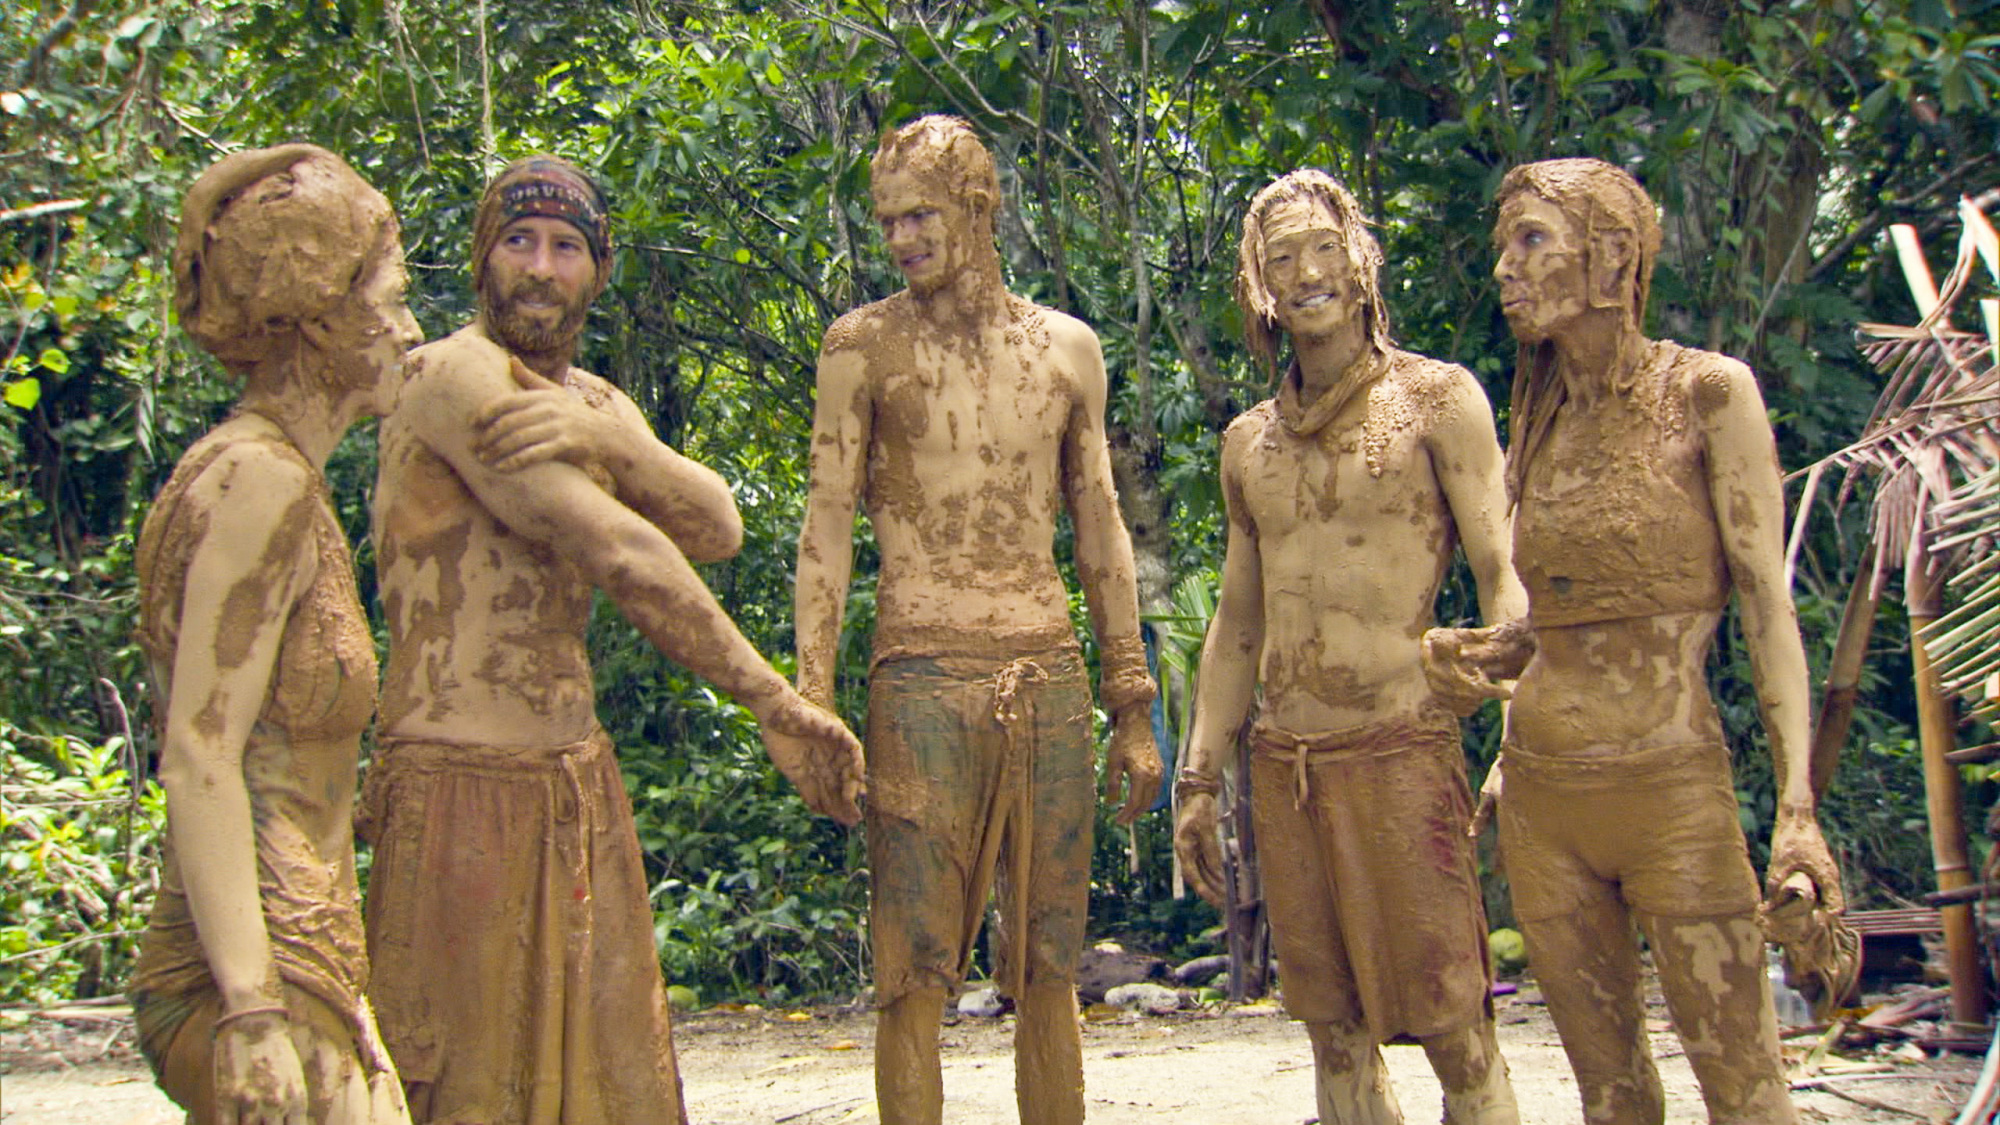 After the challenge in Season 28 Episode 12